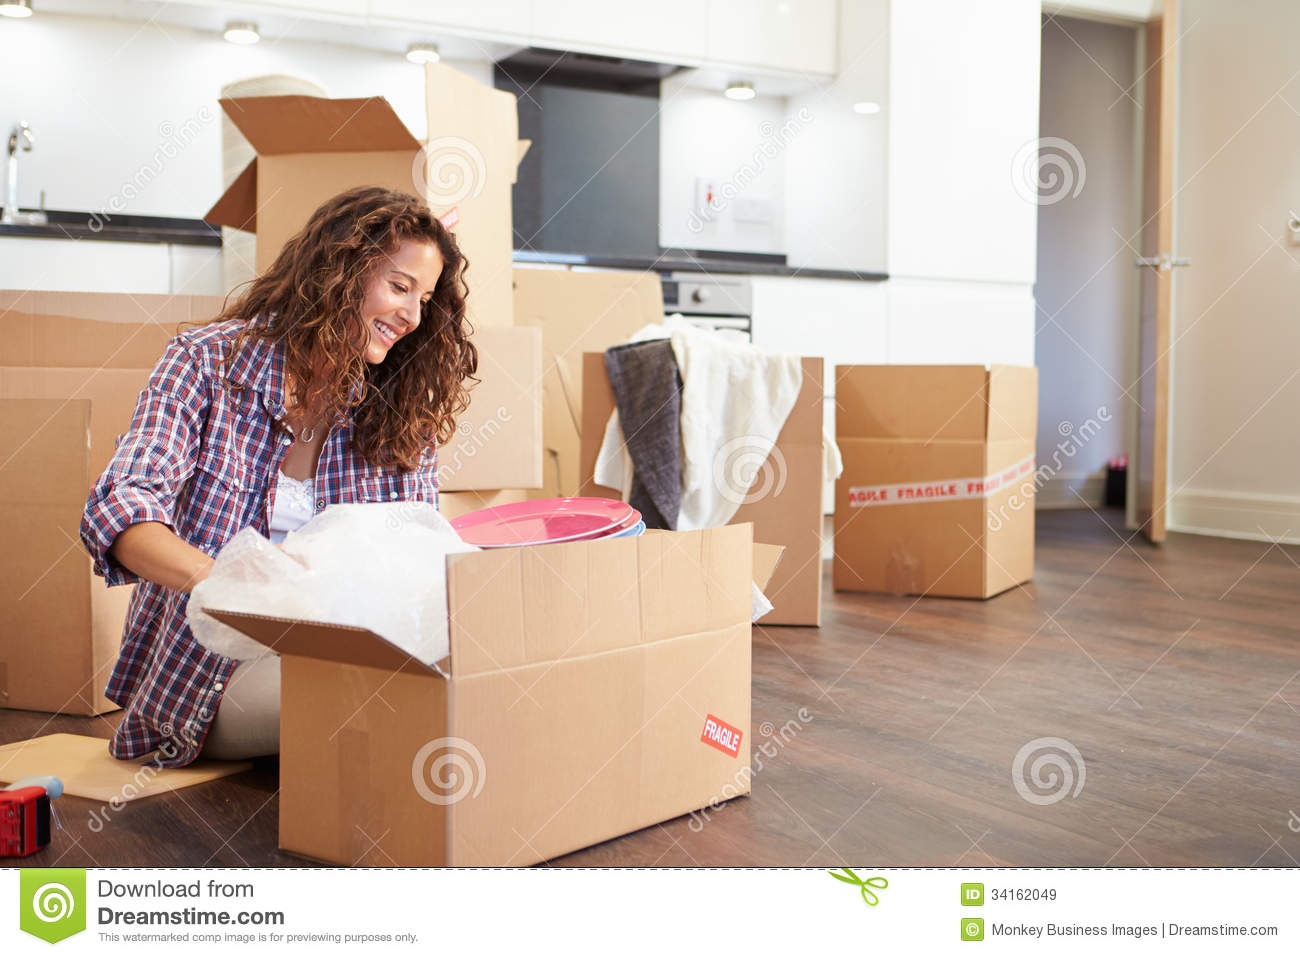 image A girl unpacked from suitcase